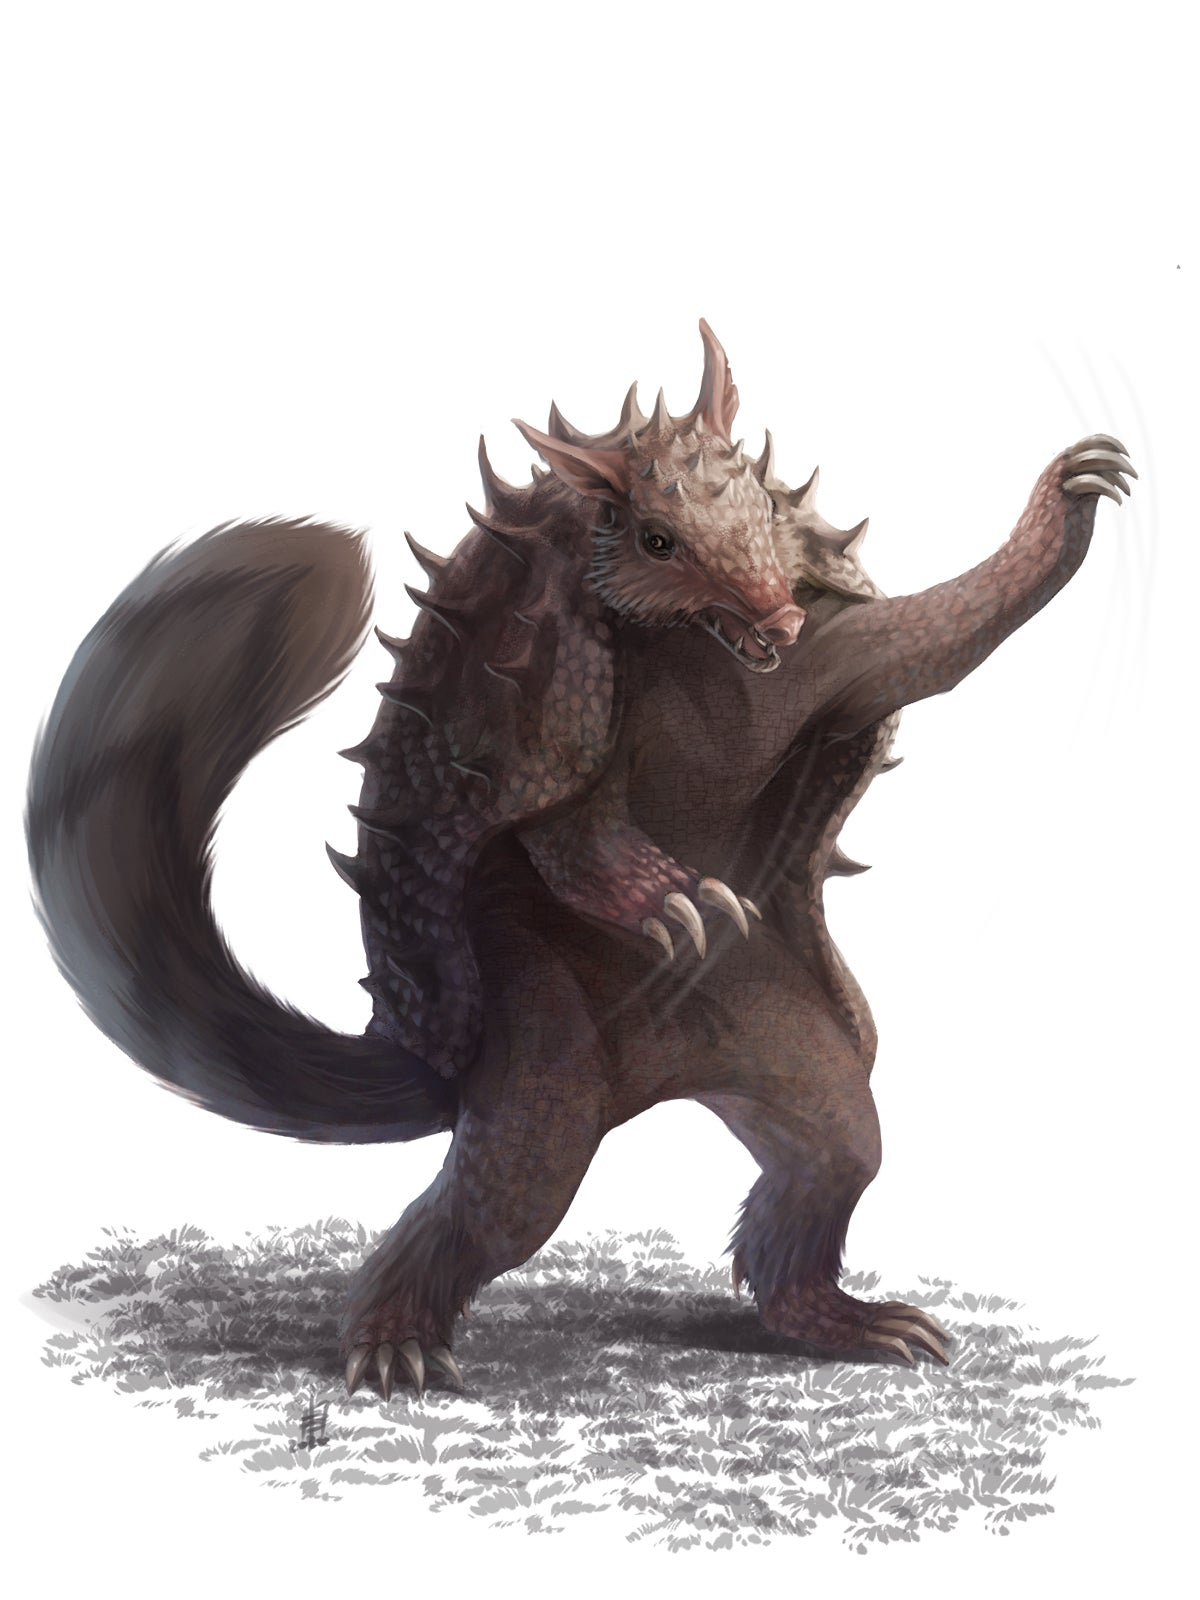 A spiked armadillo-like creature with a long fluffy tail, standing on its hind legs and reaching out